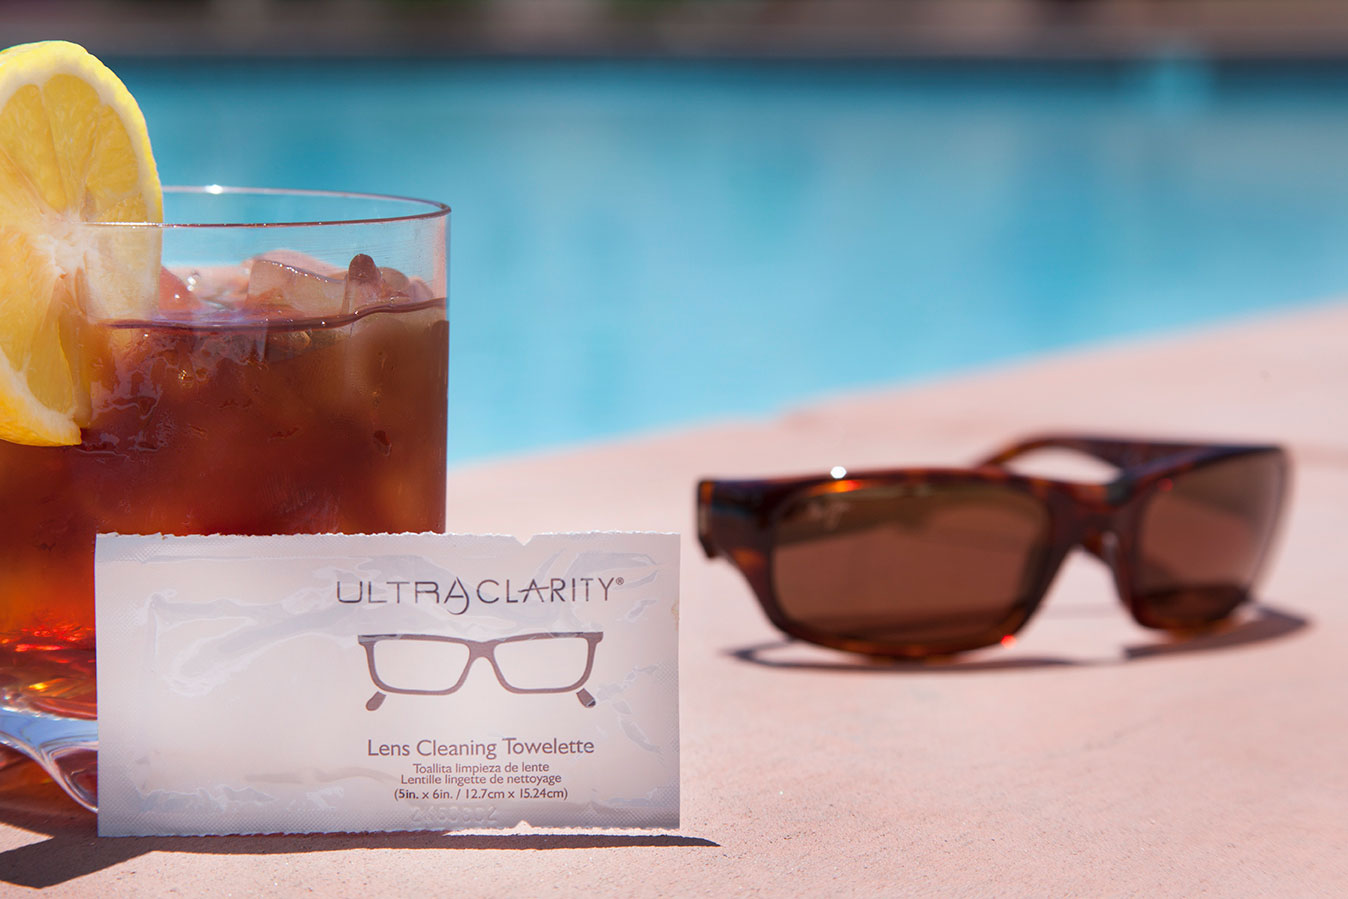 Lens Cleaning towelette, drink & sunglasses by the pool at The Hacienda in Gay Palm Springs